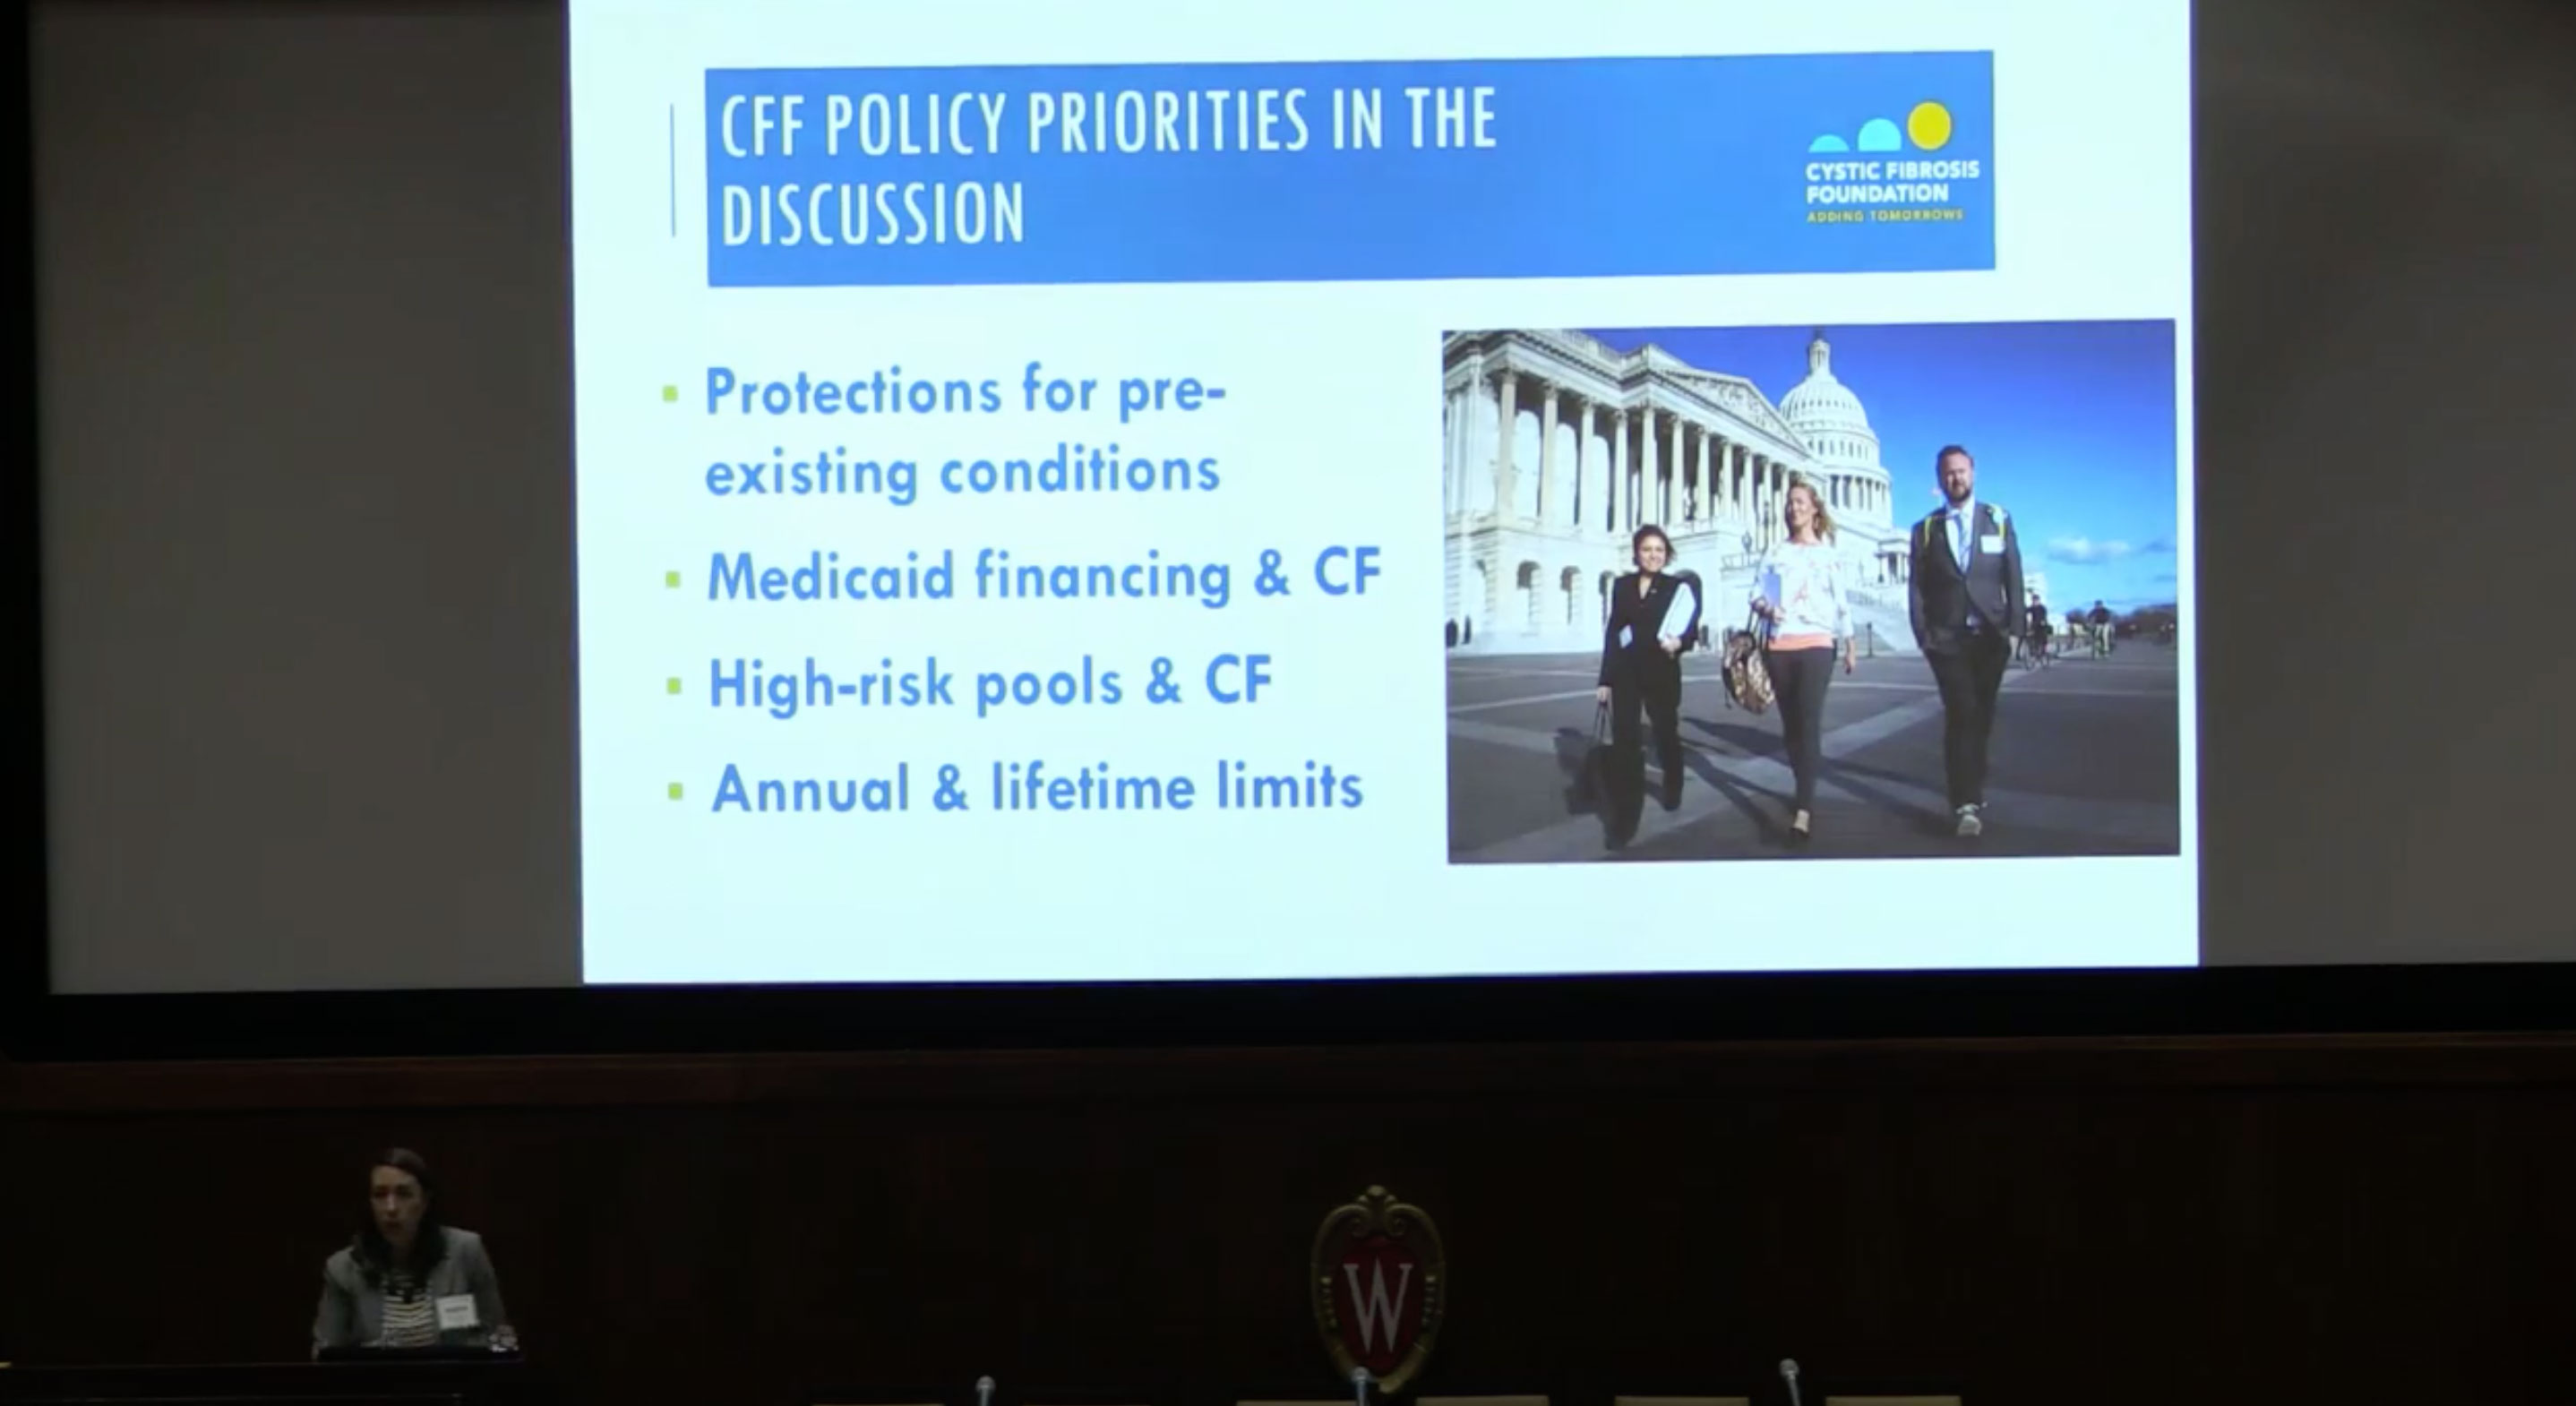 Picture from Tackling Access and Coverage Issues through Policy, Advocacy, and Compass